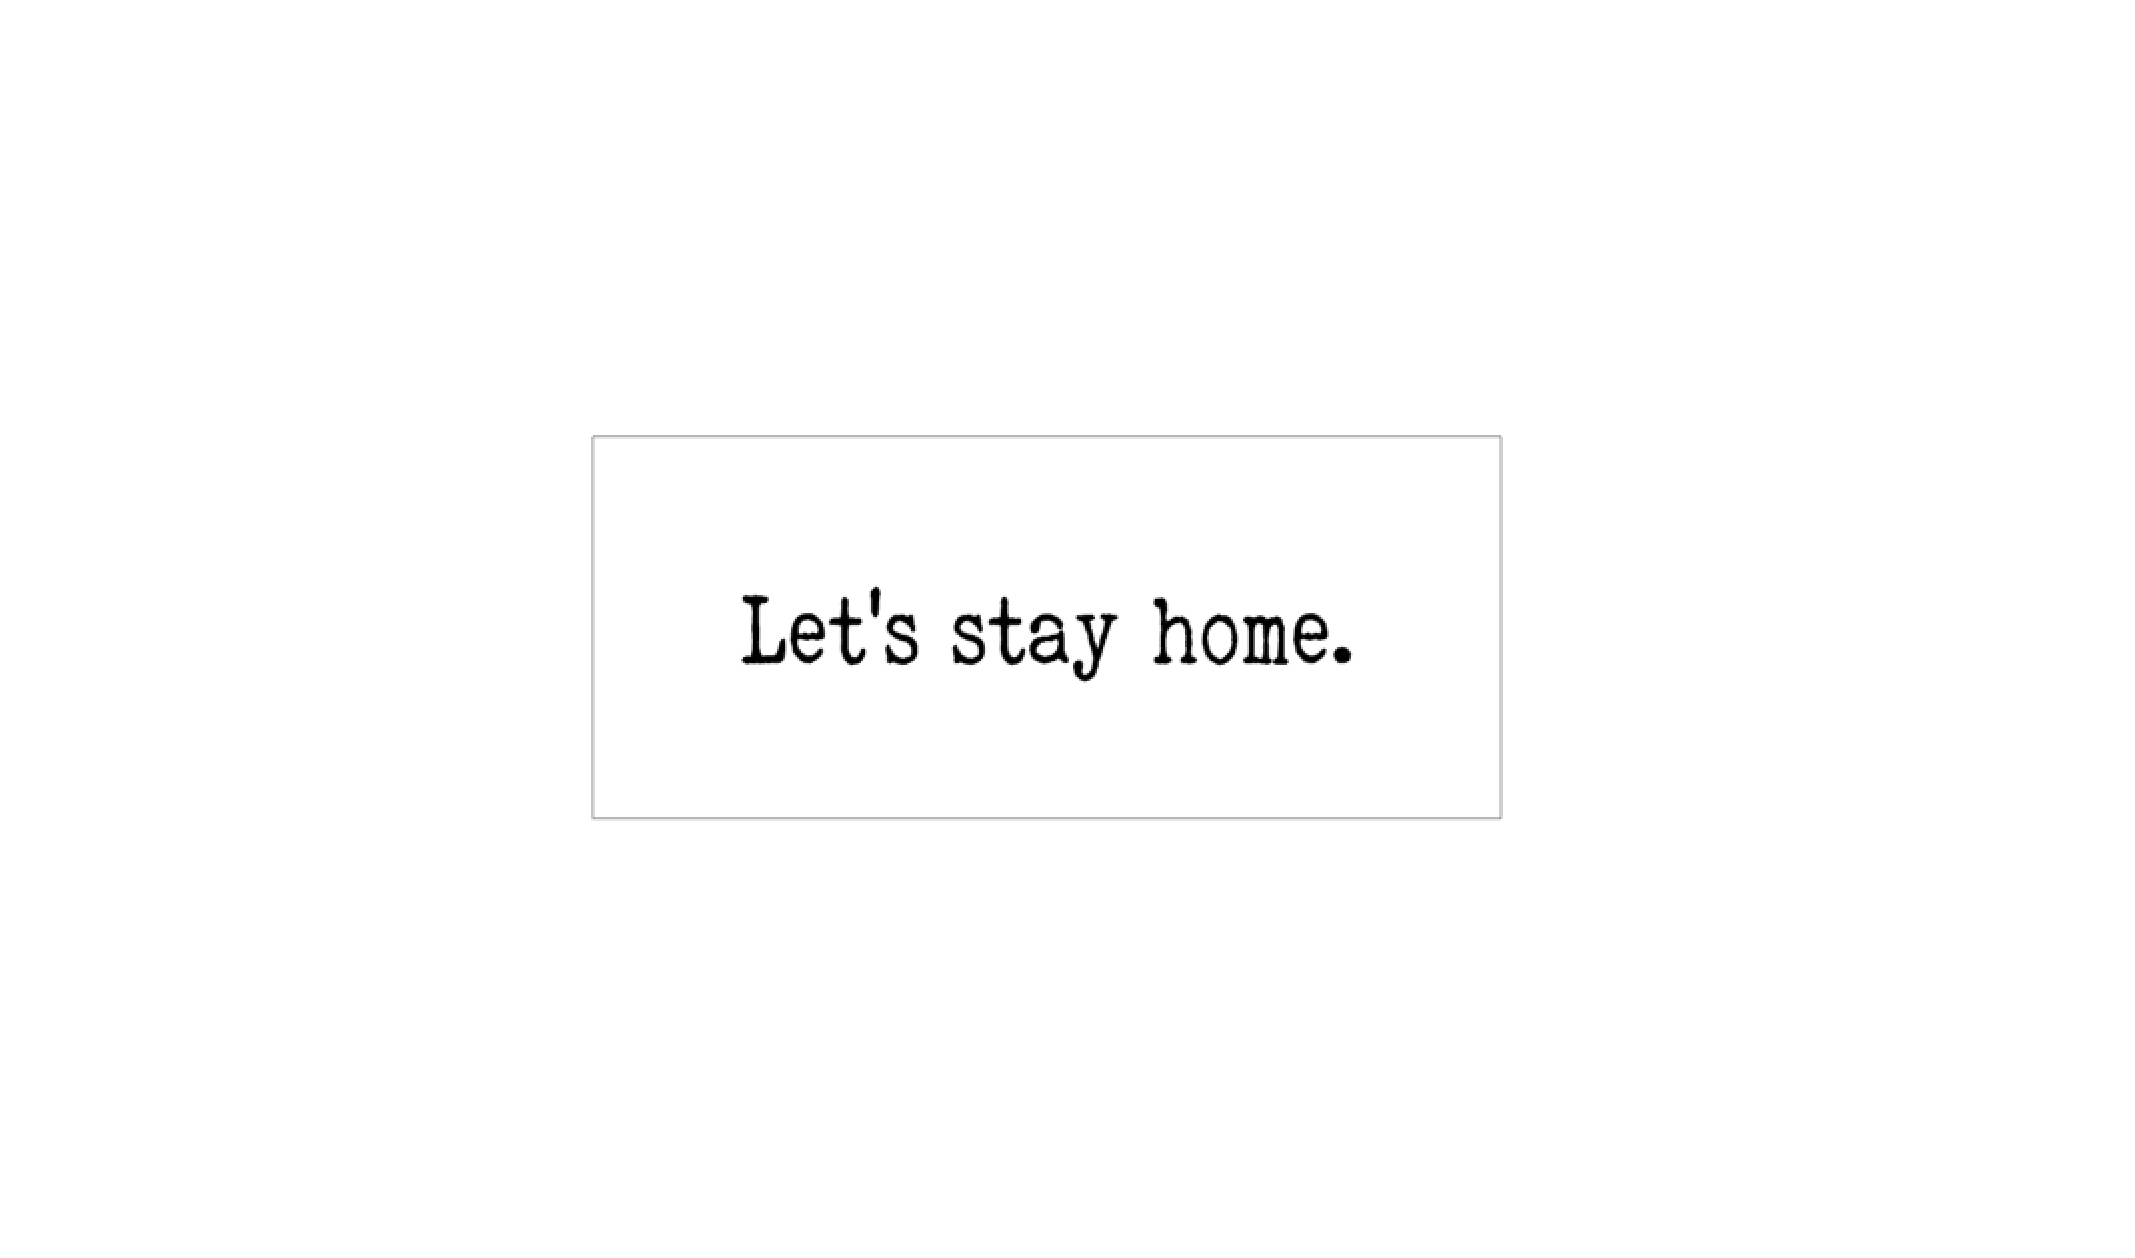 SS - Let's stay home..PNG